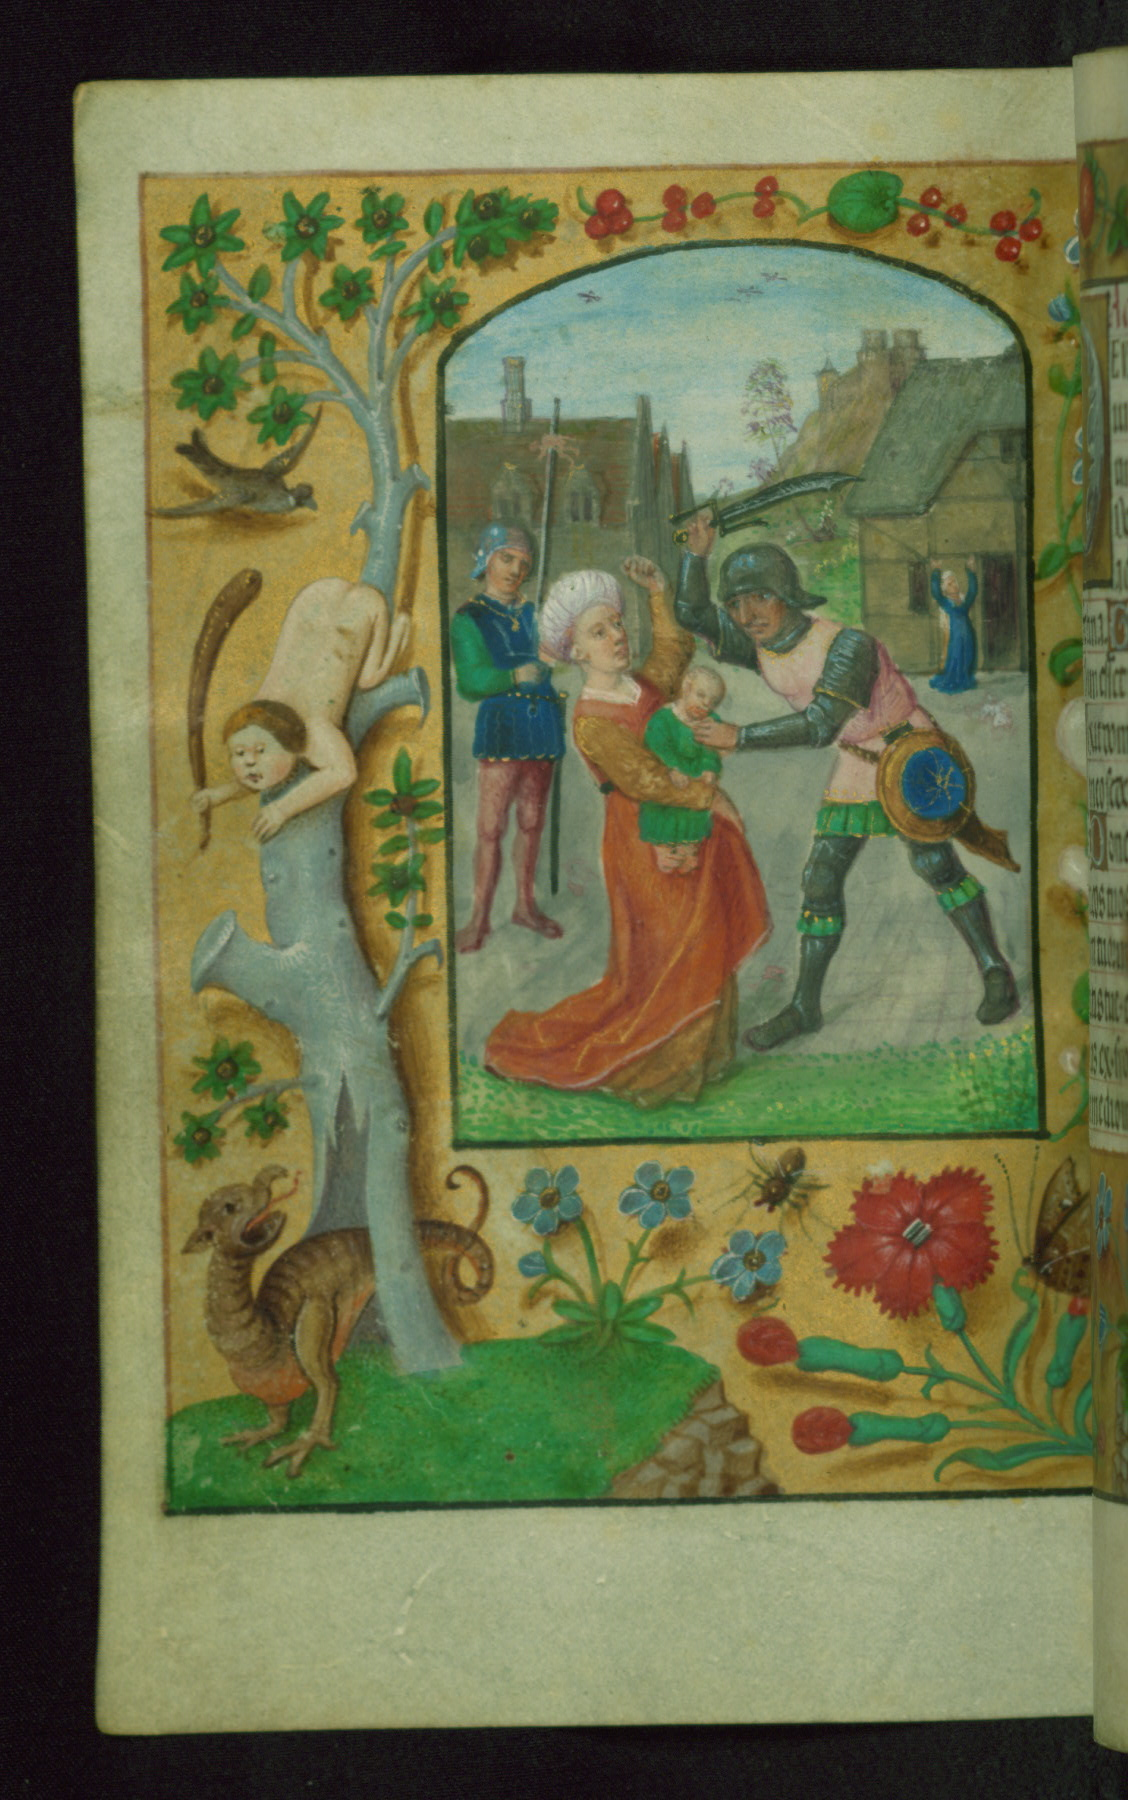 Book of Hours 1500 ca Ms. W.427 Walters Art Museum Baltimore fol. 106v Innocents